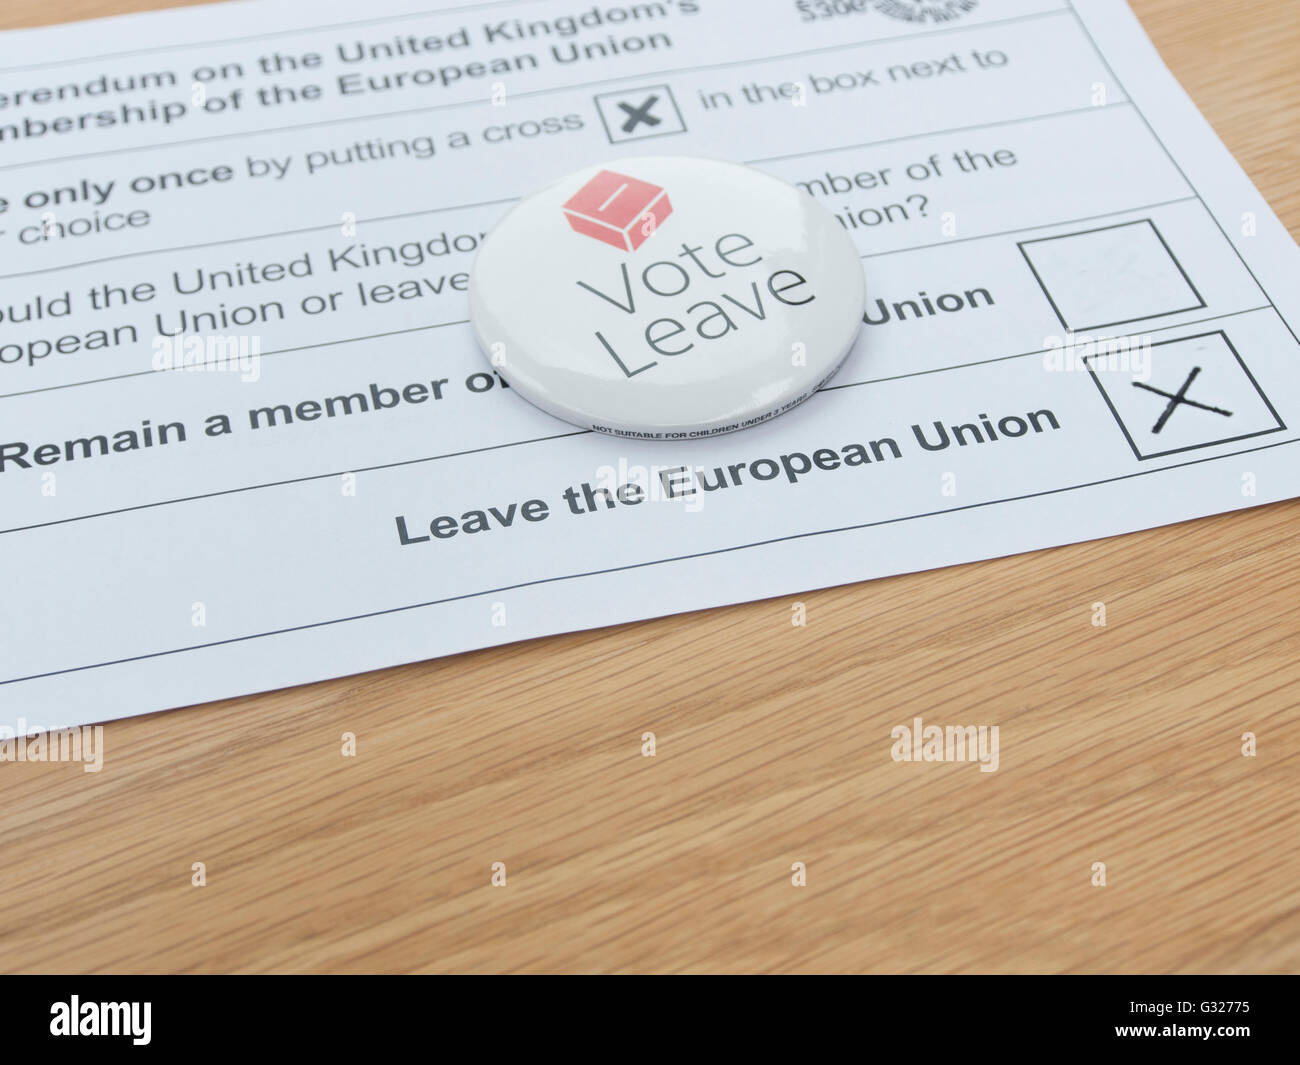 Exeter UK 7 June 2016 EU referendum voting by postal ballot vote leave badge leave the European union - Stock Image